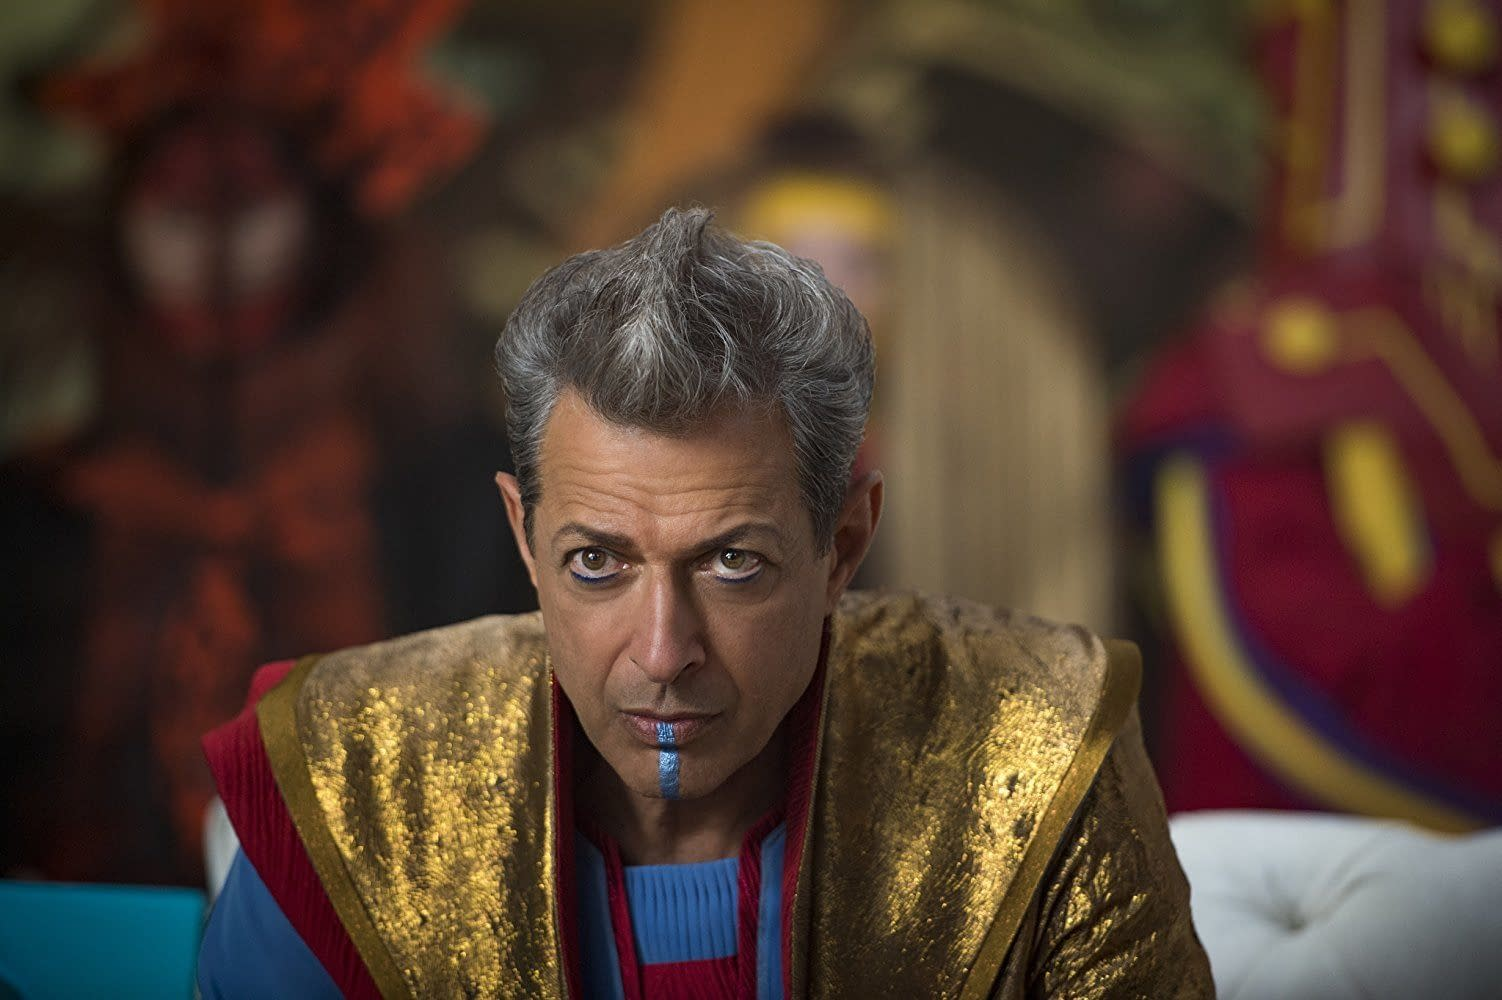 Jeff Goldblum on the Grandmaster's Fate After Avengers: Infinity War [Spoilers]